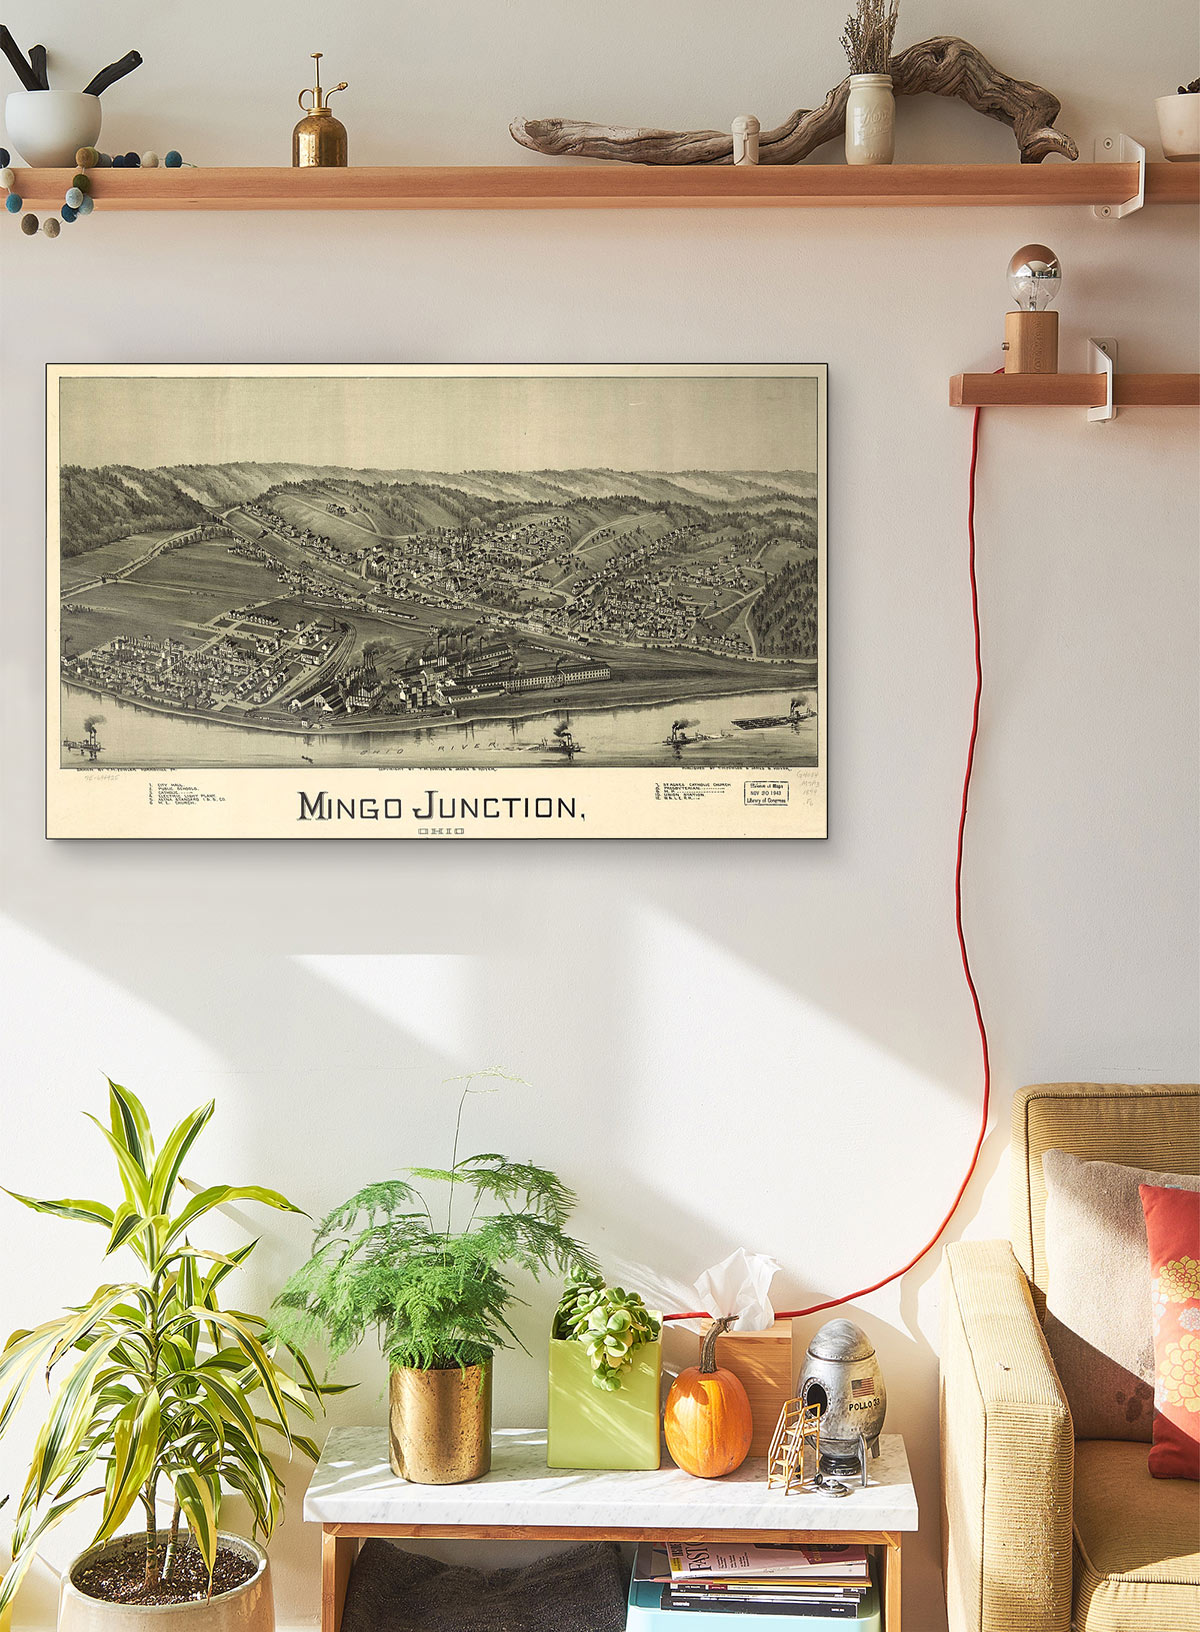 Mingo Junction Ohio 1899 LARGE Vintage Map